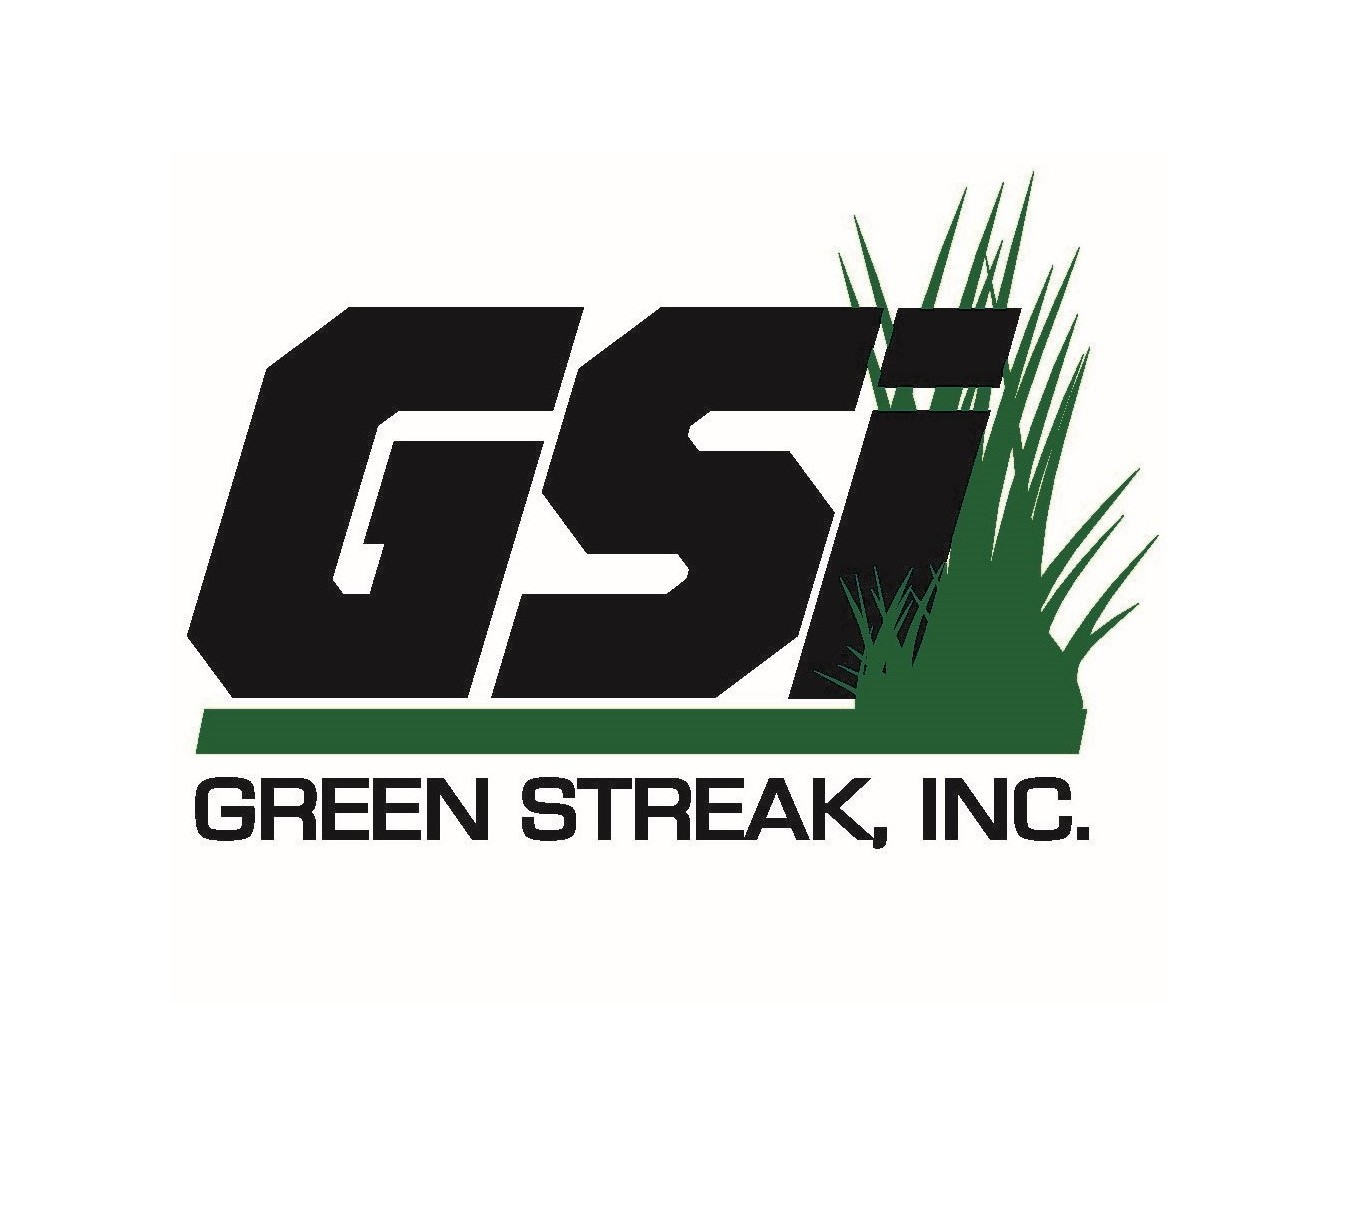 Green streak inc.